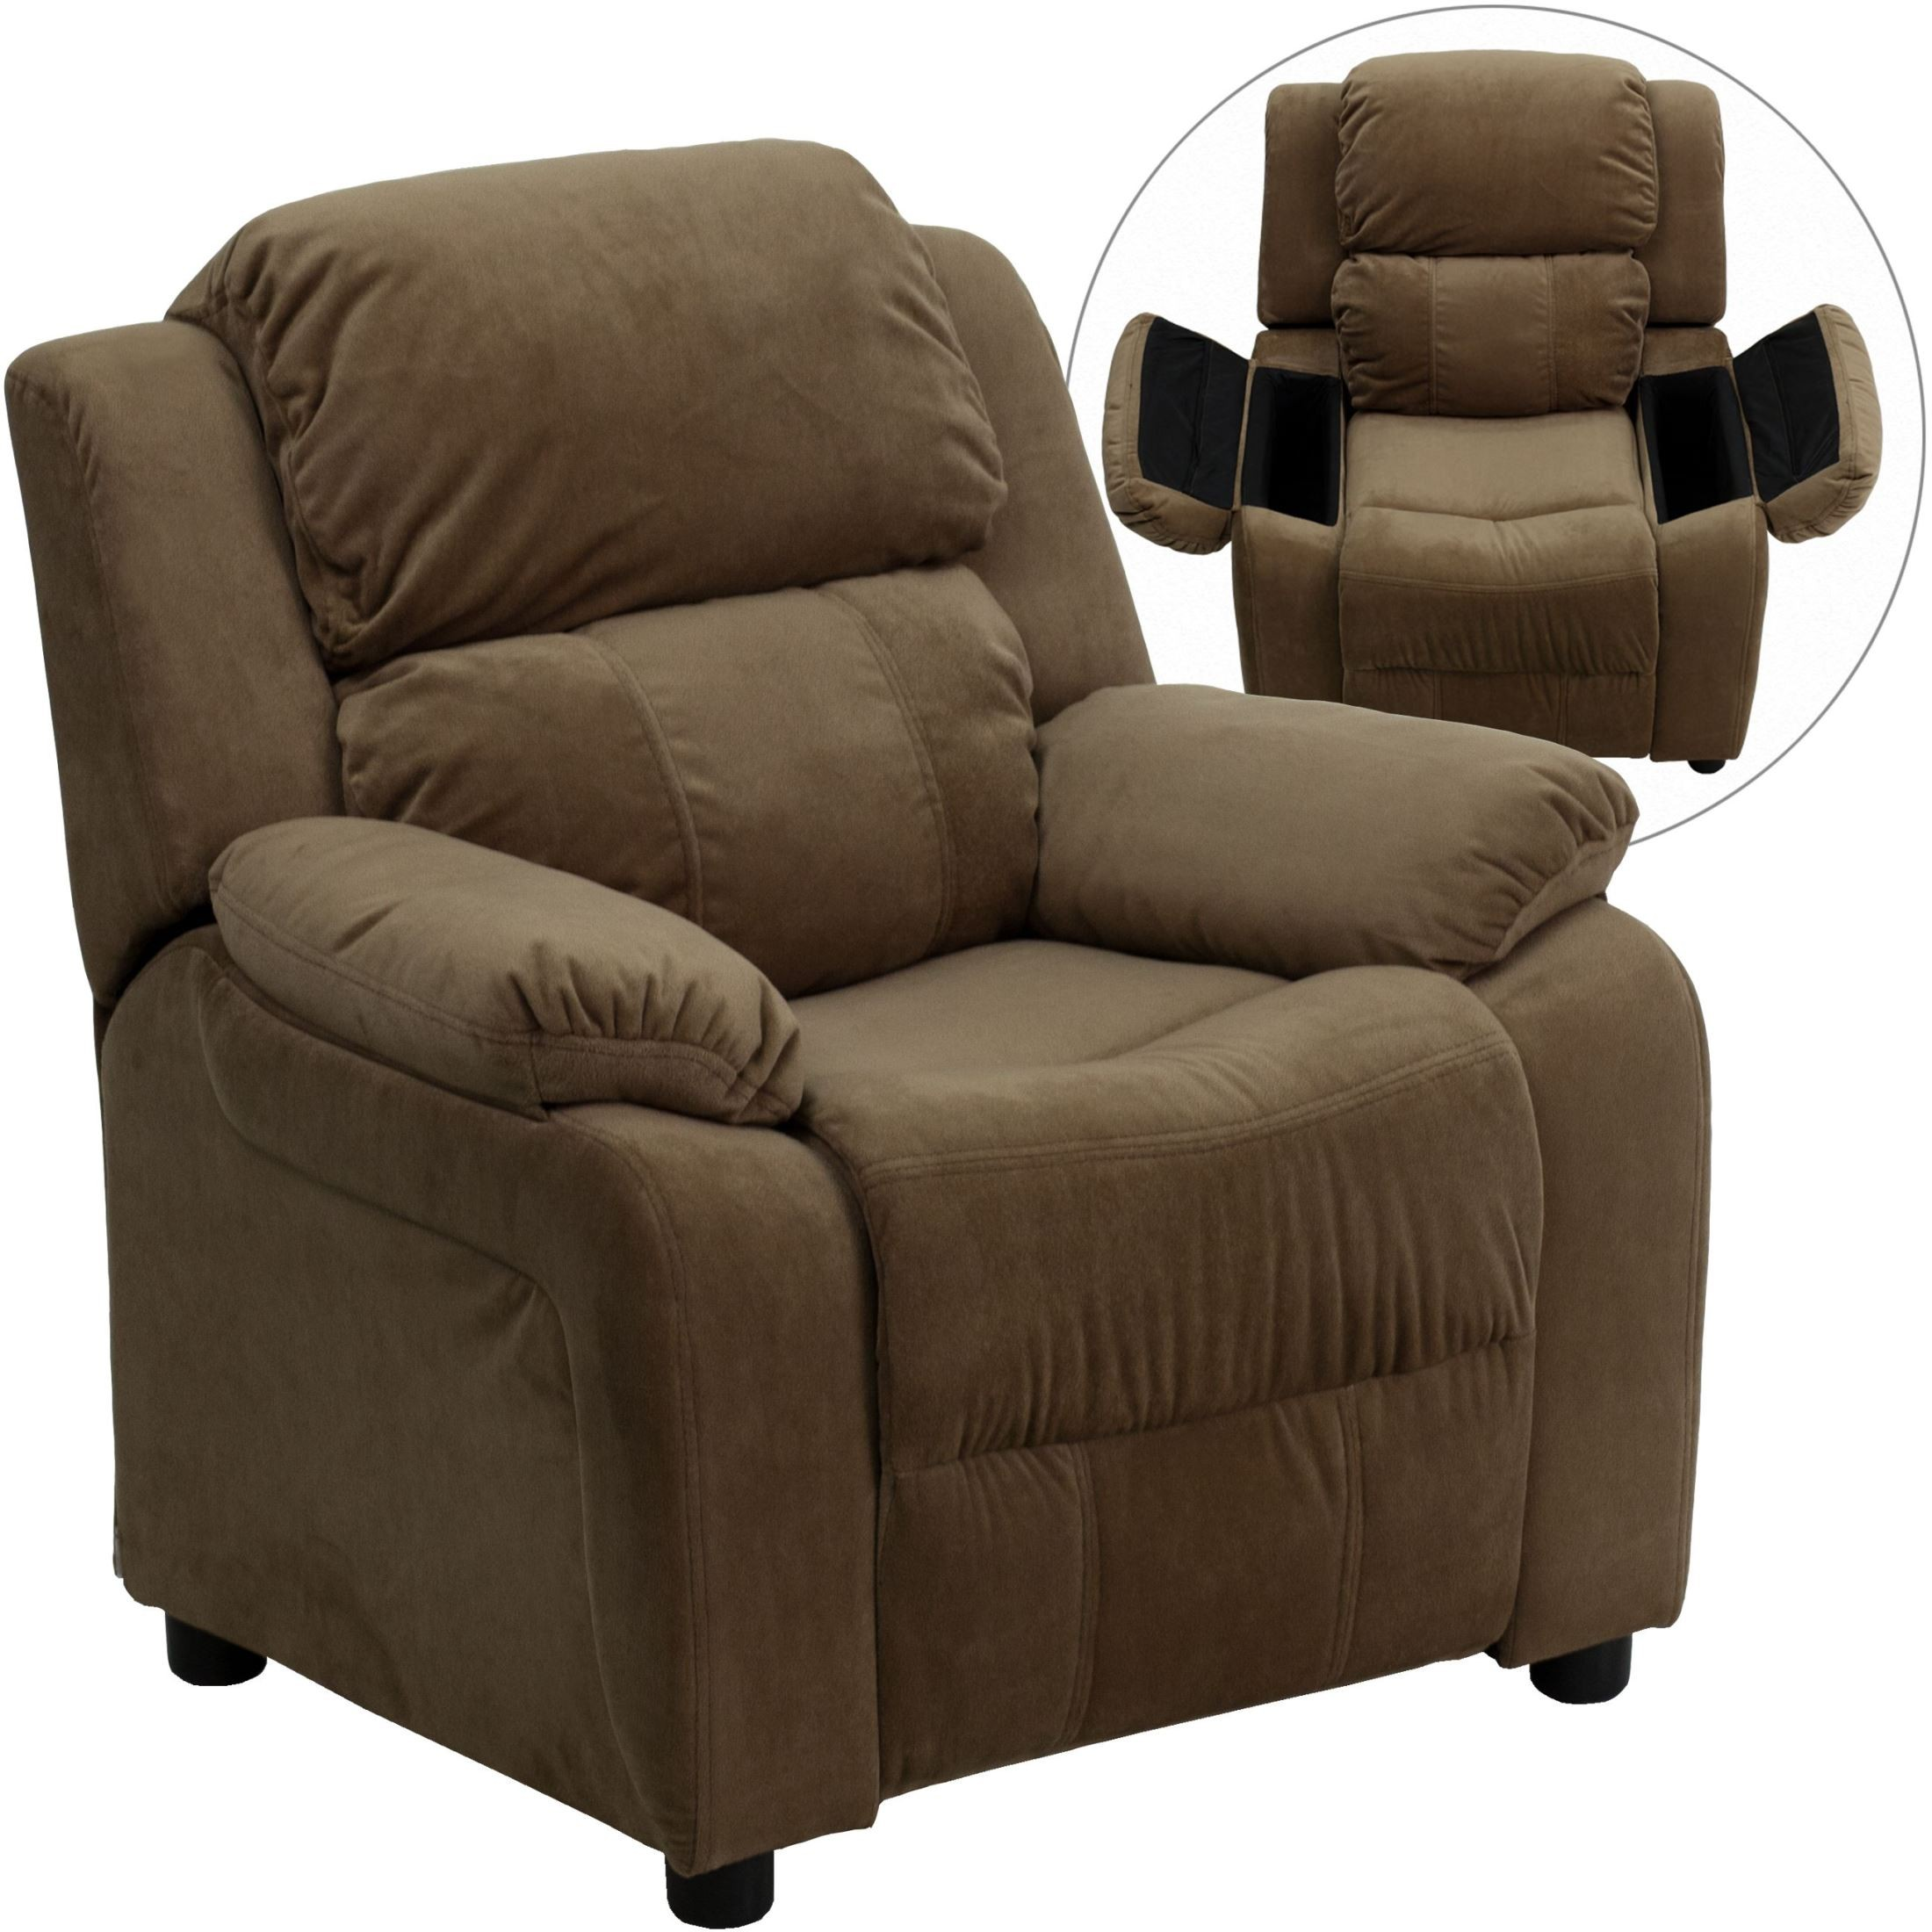 Deluxe Heavily Padded Brown Kids Storage Arm Recliner from